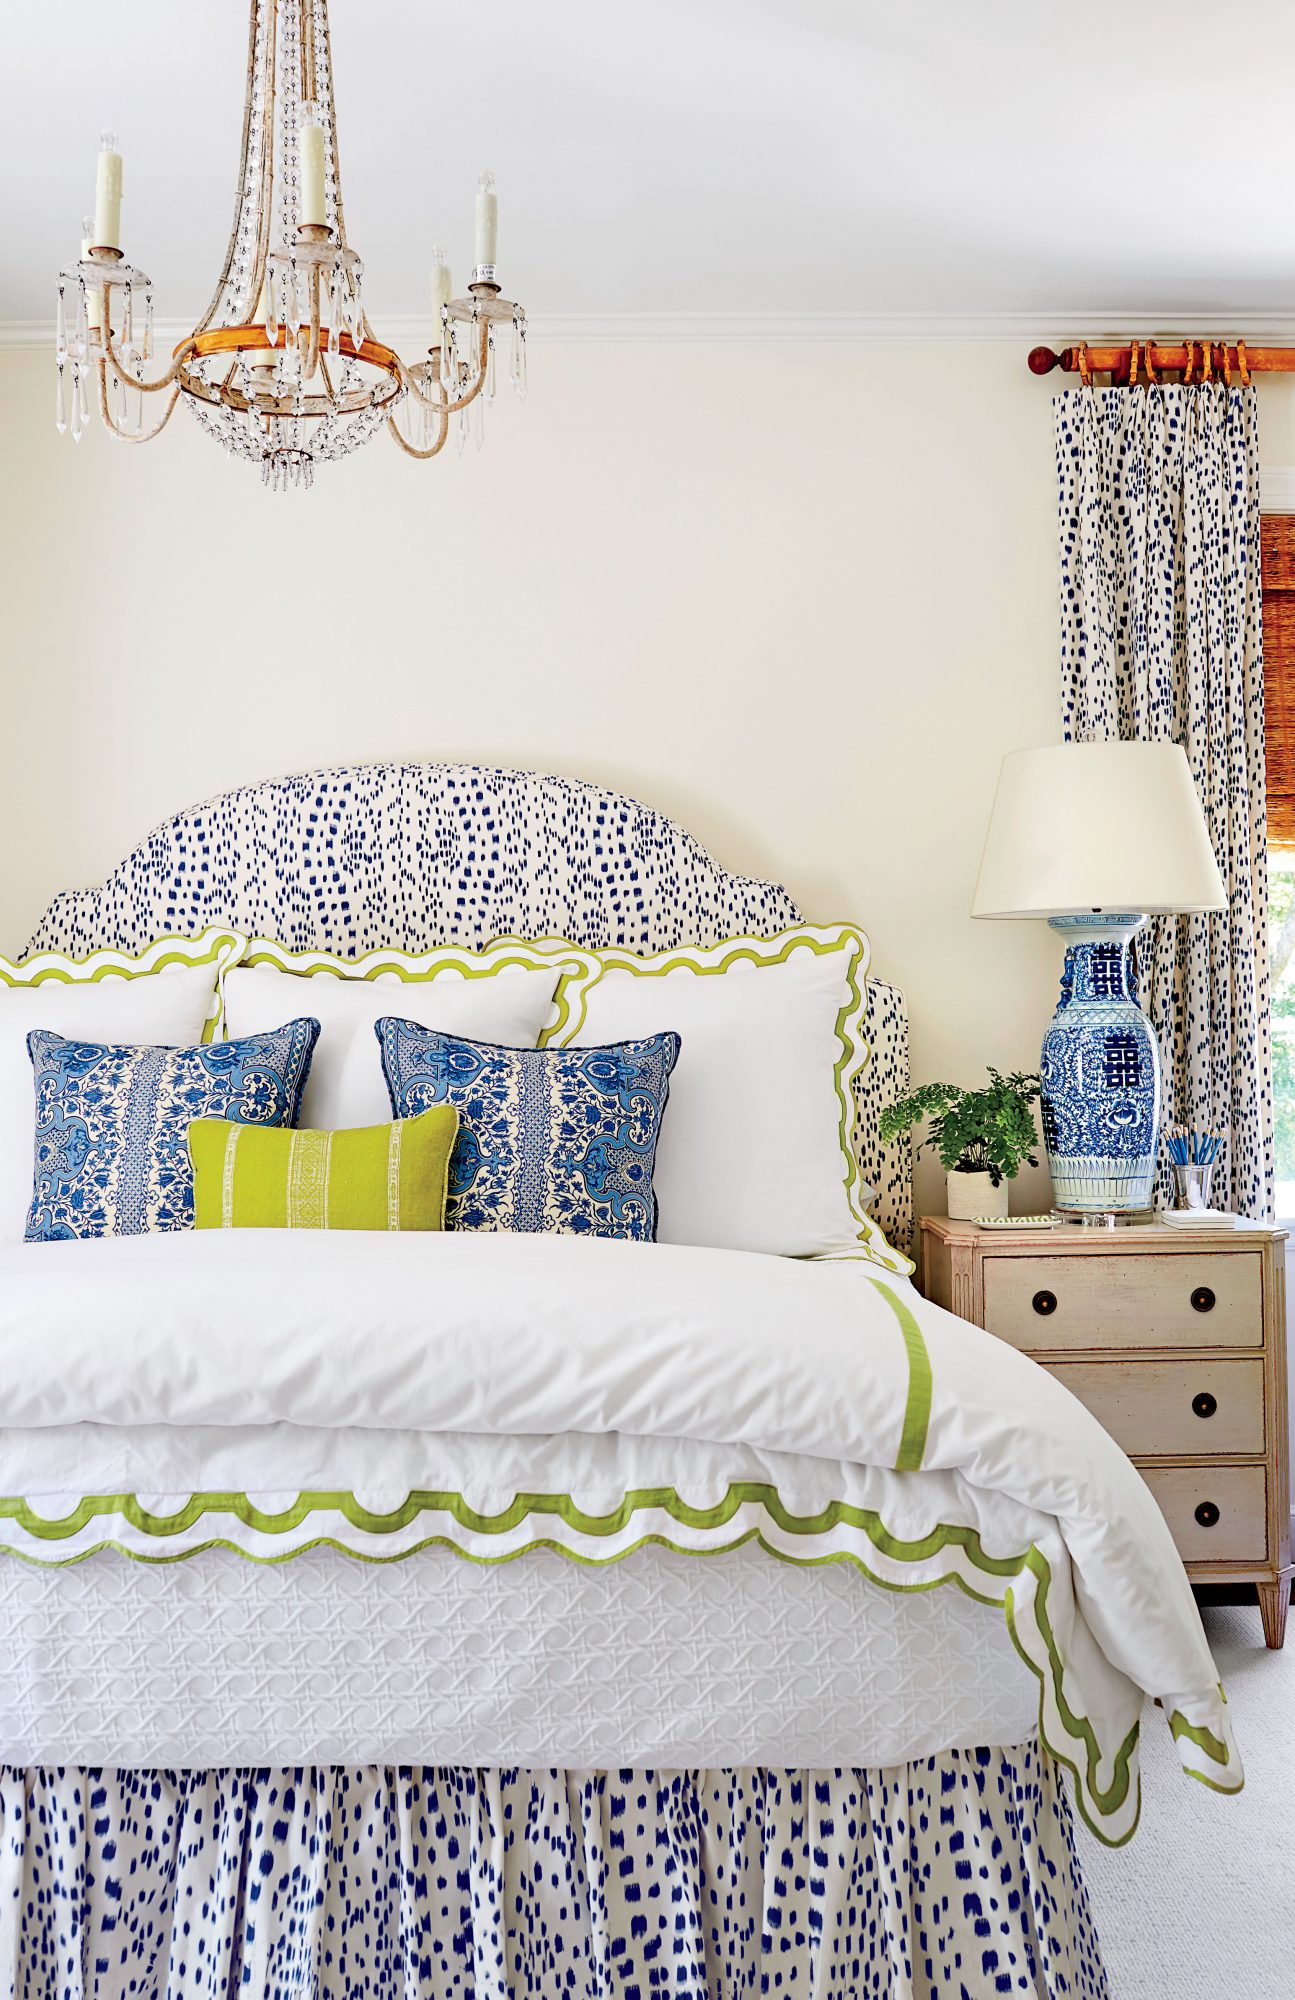 9 Things That Make a Bedroom Unsophisticated. 9 Things That Make a Bedroom Unsophisticated   Southern Living